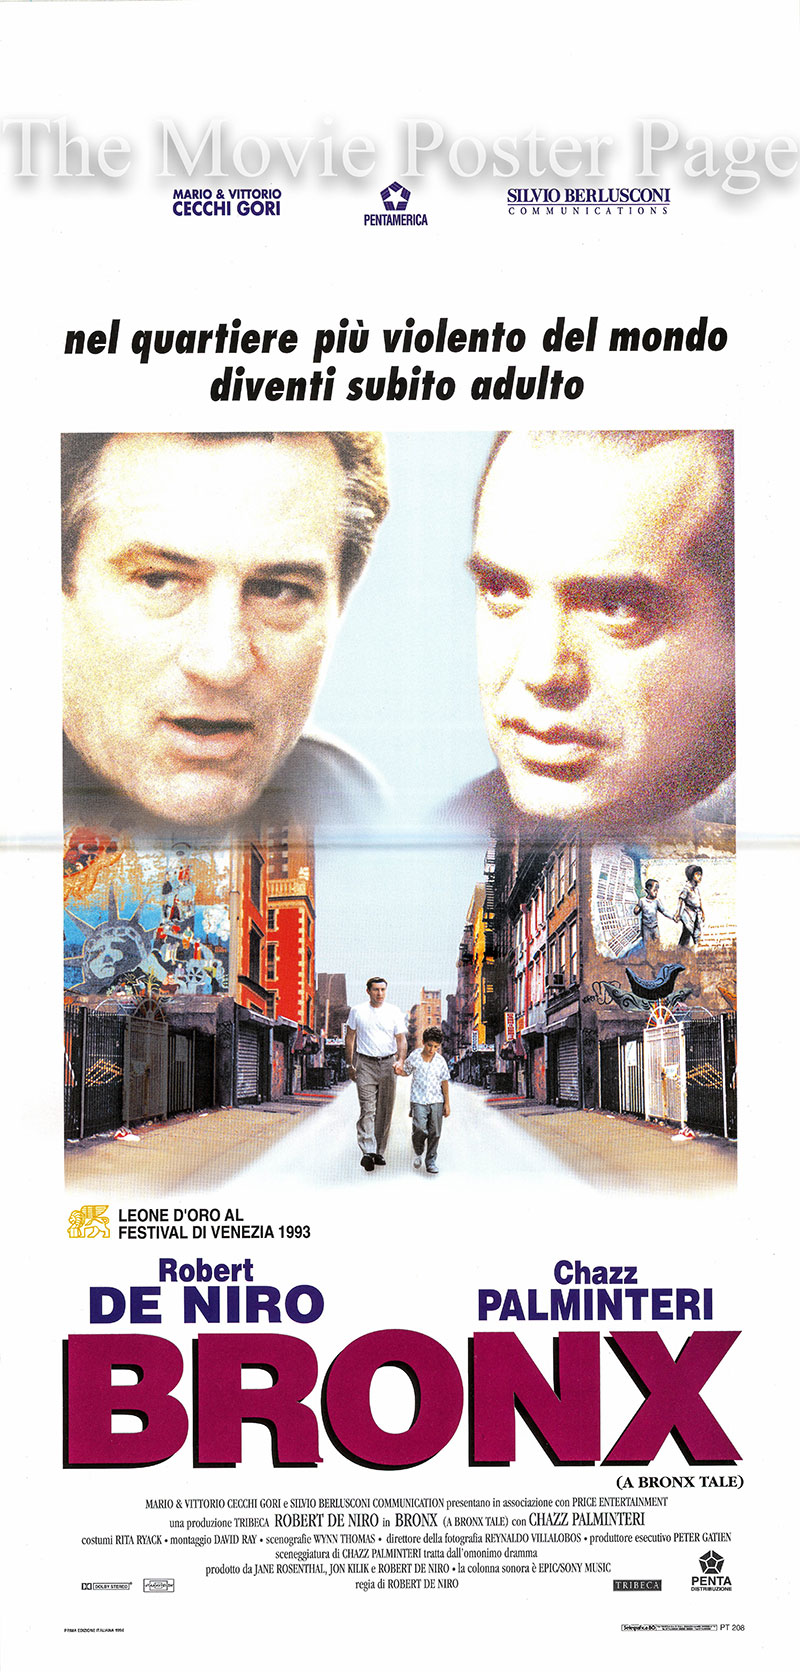 Pictured is an Italian locandina promotional poster for the 1993 Robert DeNiro film <i>A Bronx Tale</i> starring Robert DeNiro as Lorenzo.